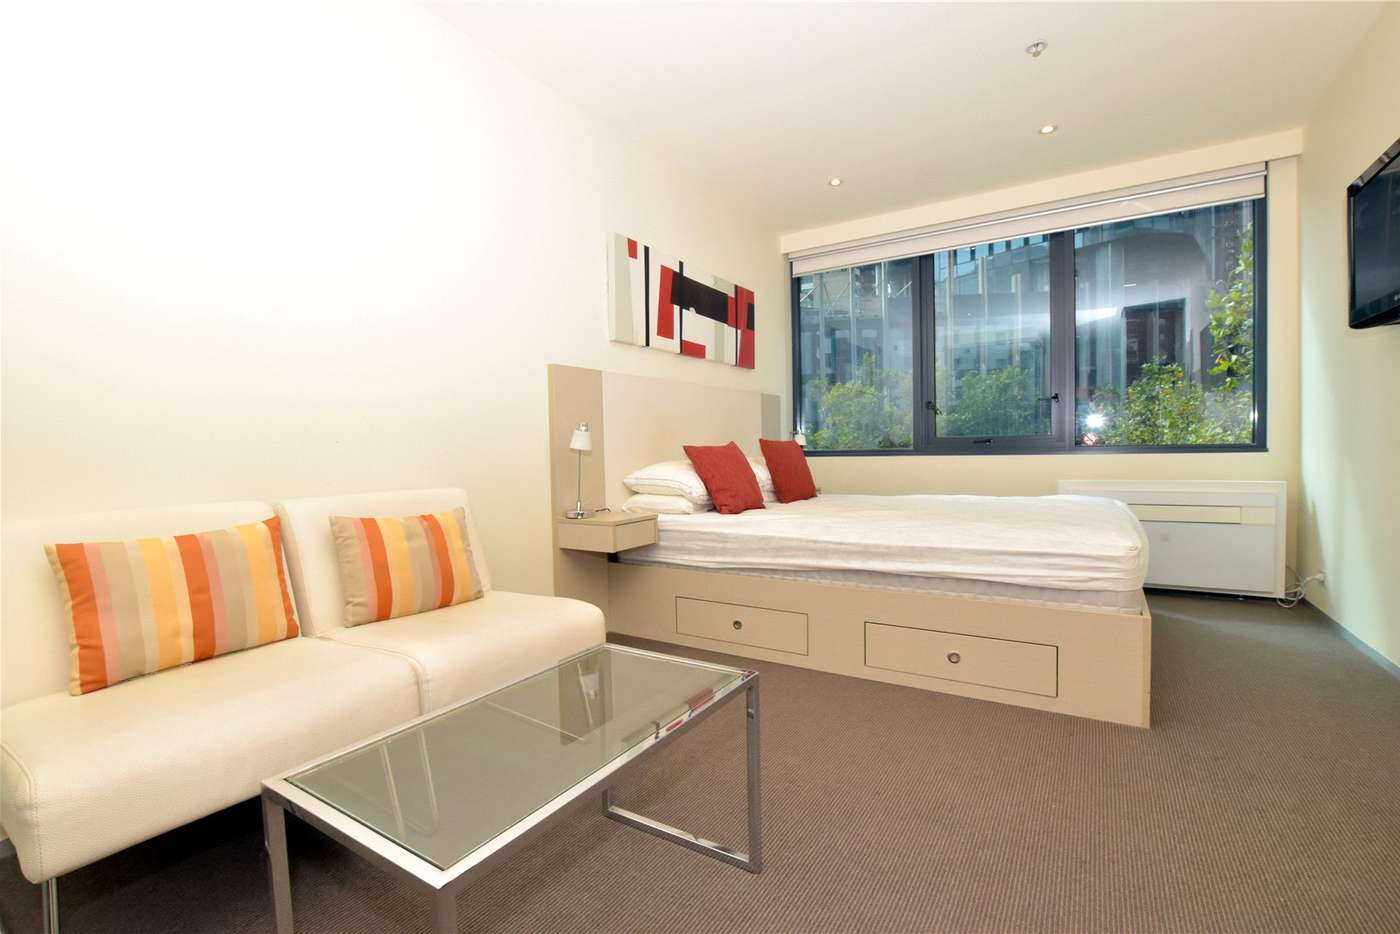 Main view of Homely studio listing, 309/181 ABeckett Street, Melbourne VIC 3000